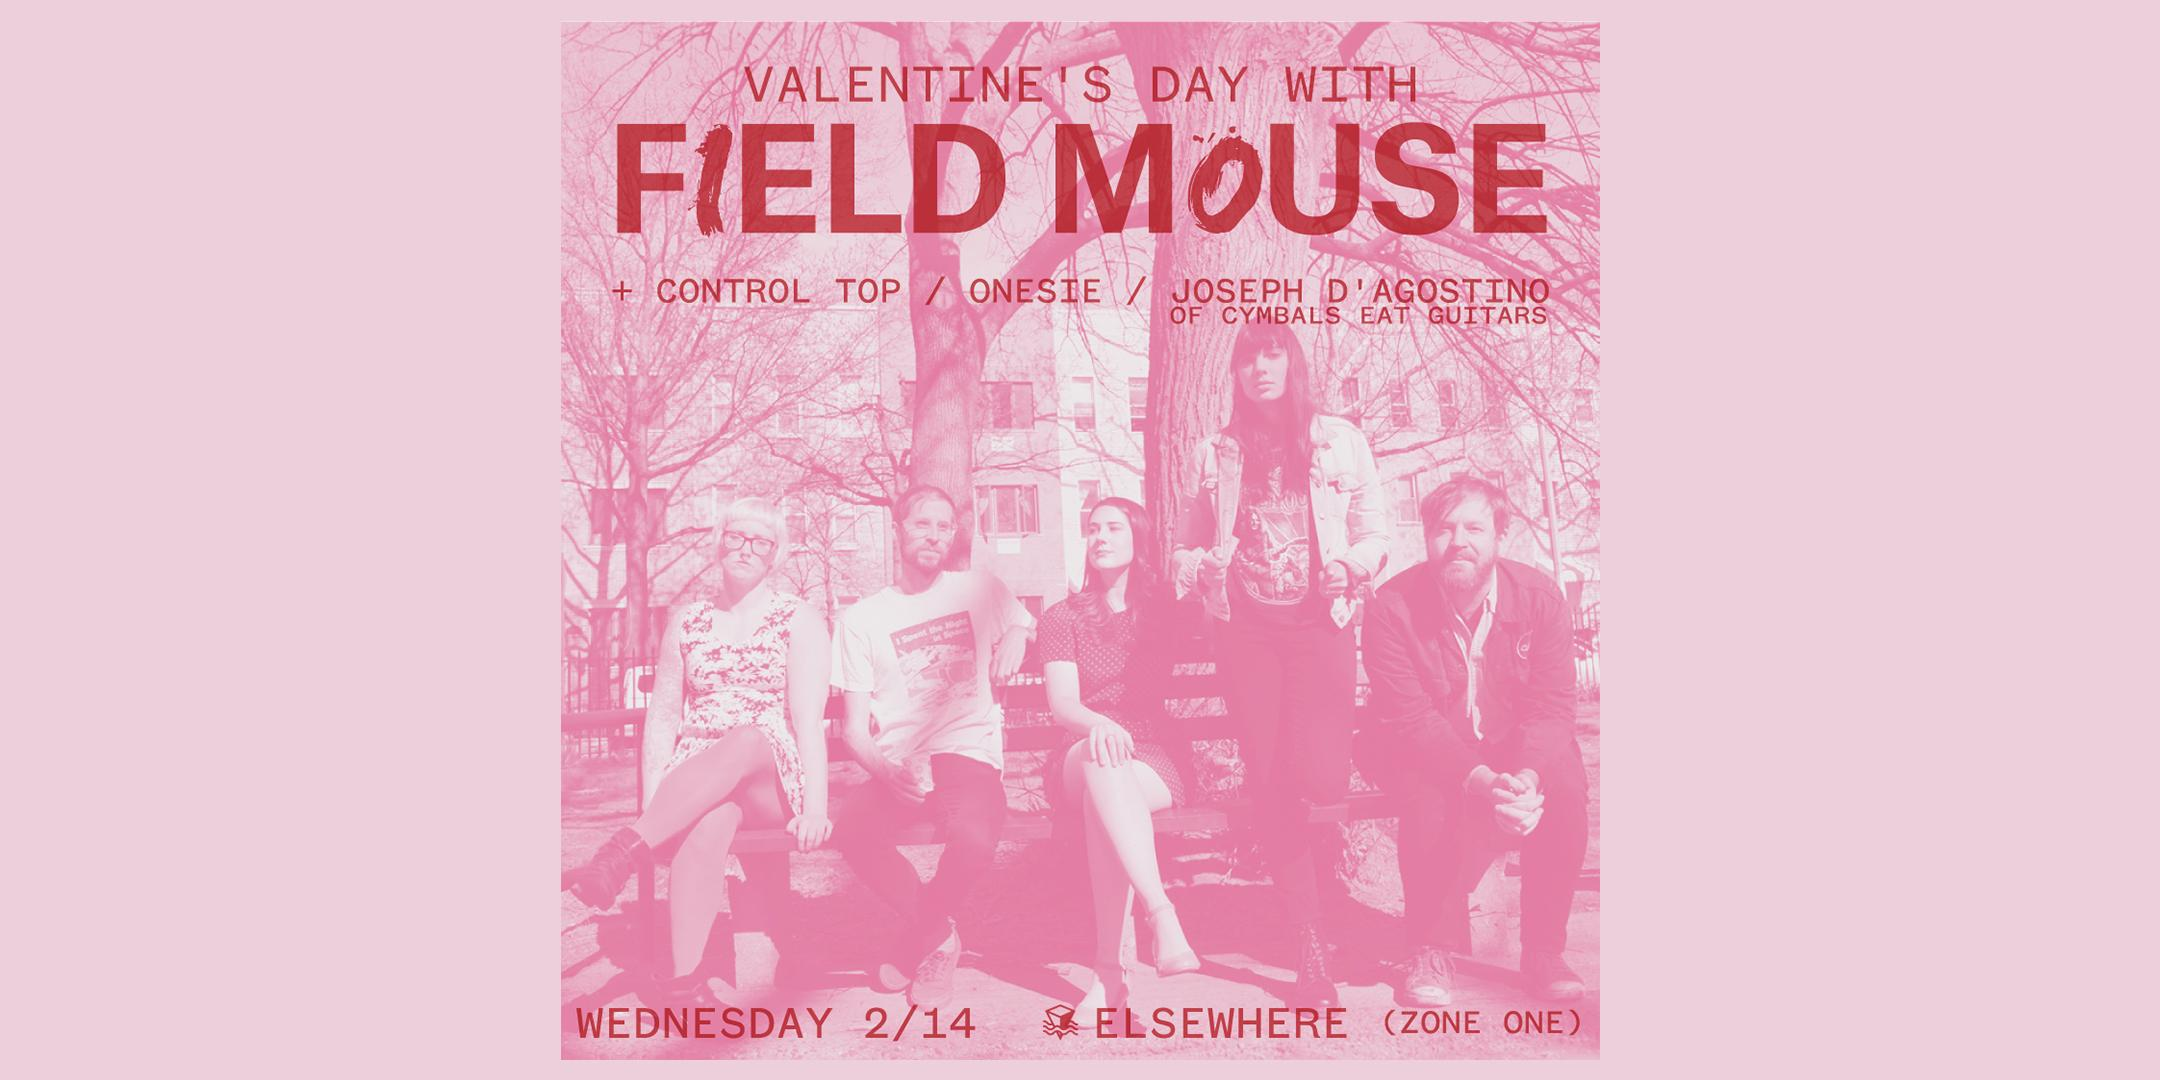 Valentine's Day with Field Mouse